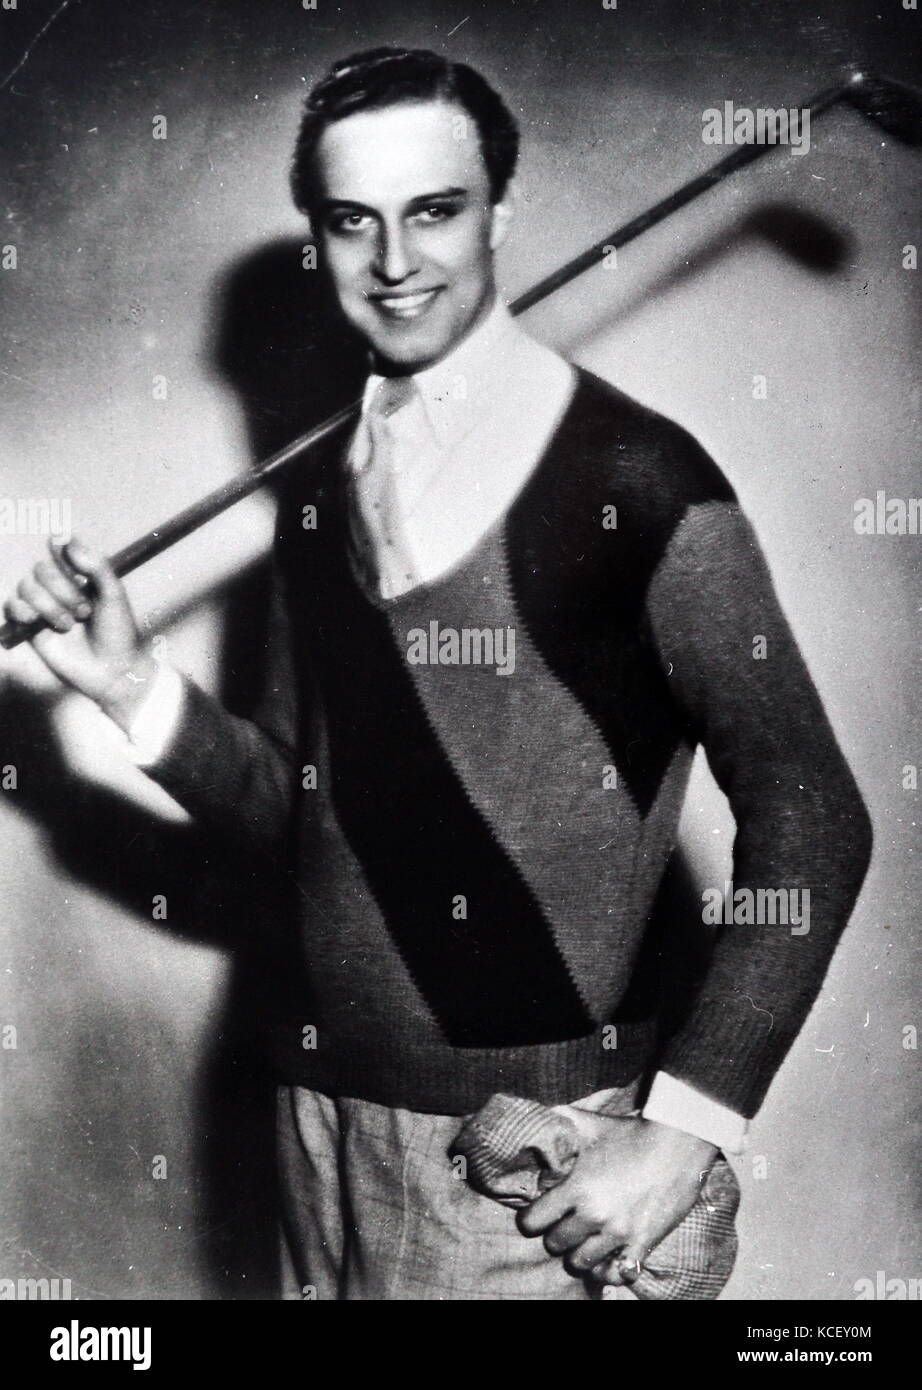 Photograph of Werner Fuetterer (1907-1991) a German film actor. Dated 20th Century - Stock Image